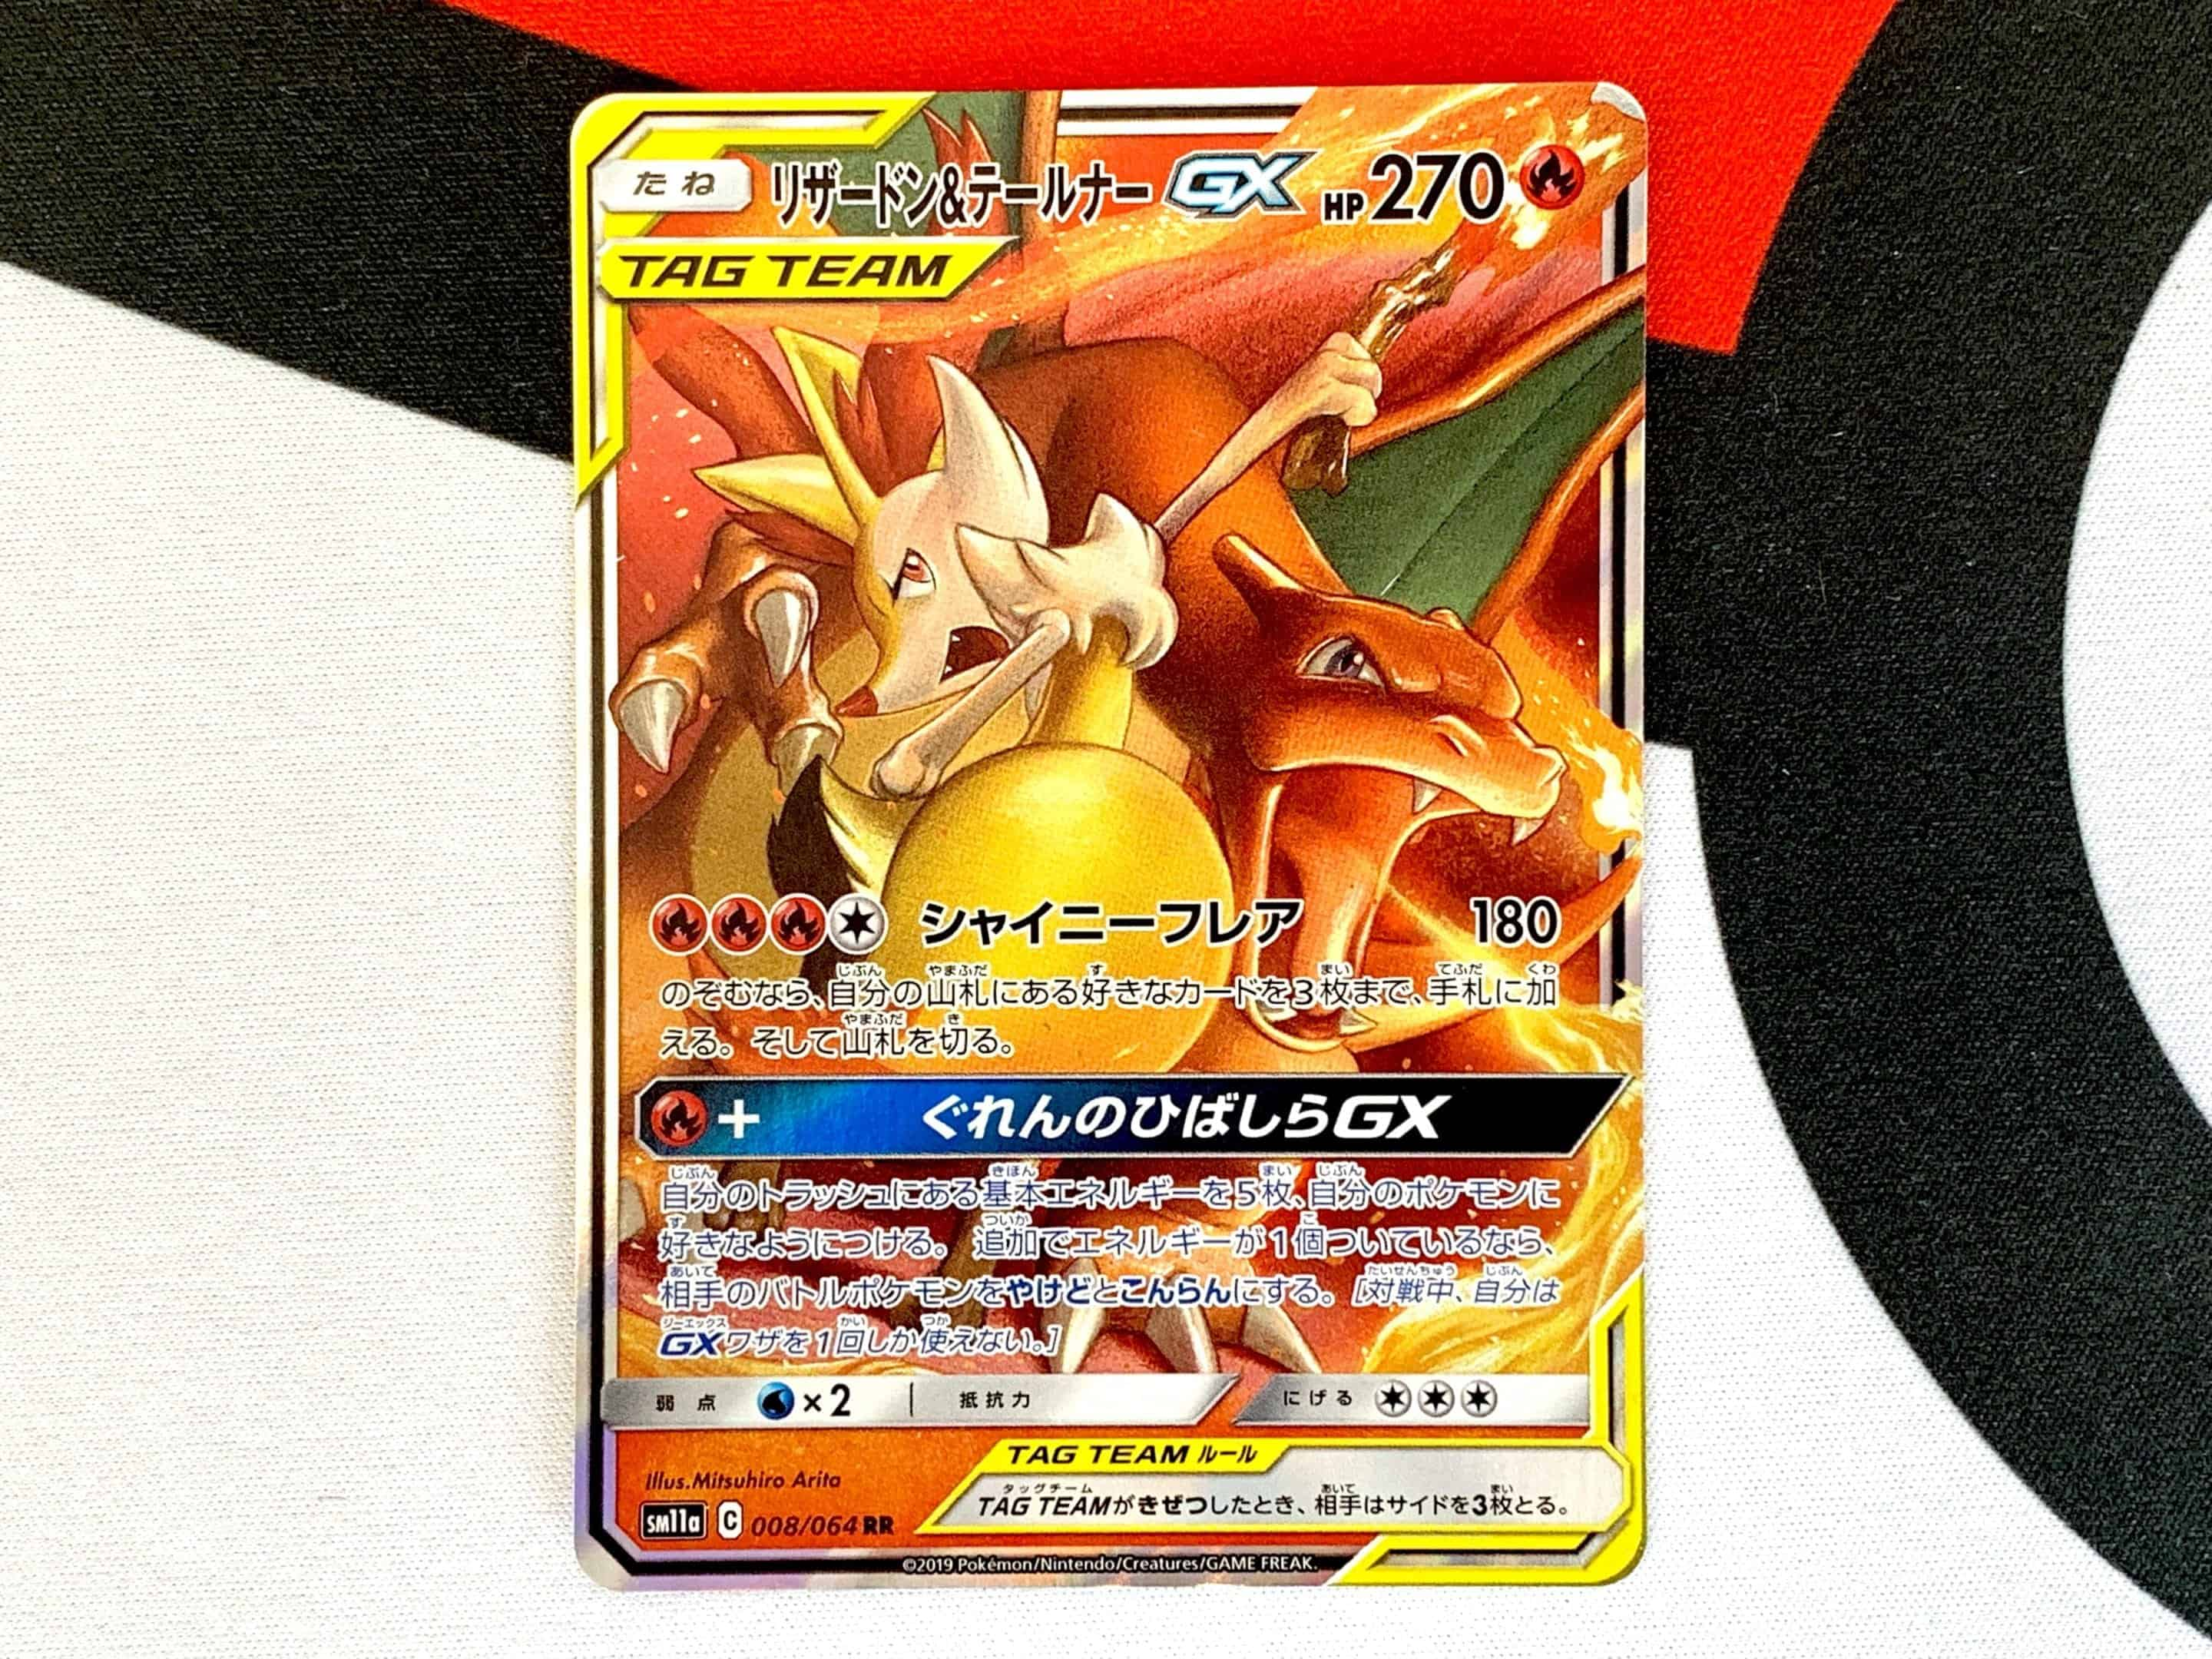 Remix-Bout-SM11-Trio-of-Tag-Team-Cards-Charizard-Cardcollectors-Pokemon-TCG